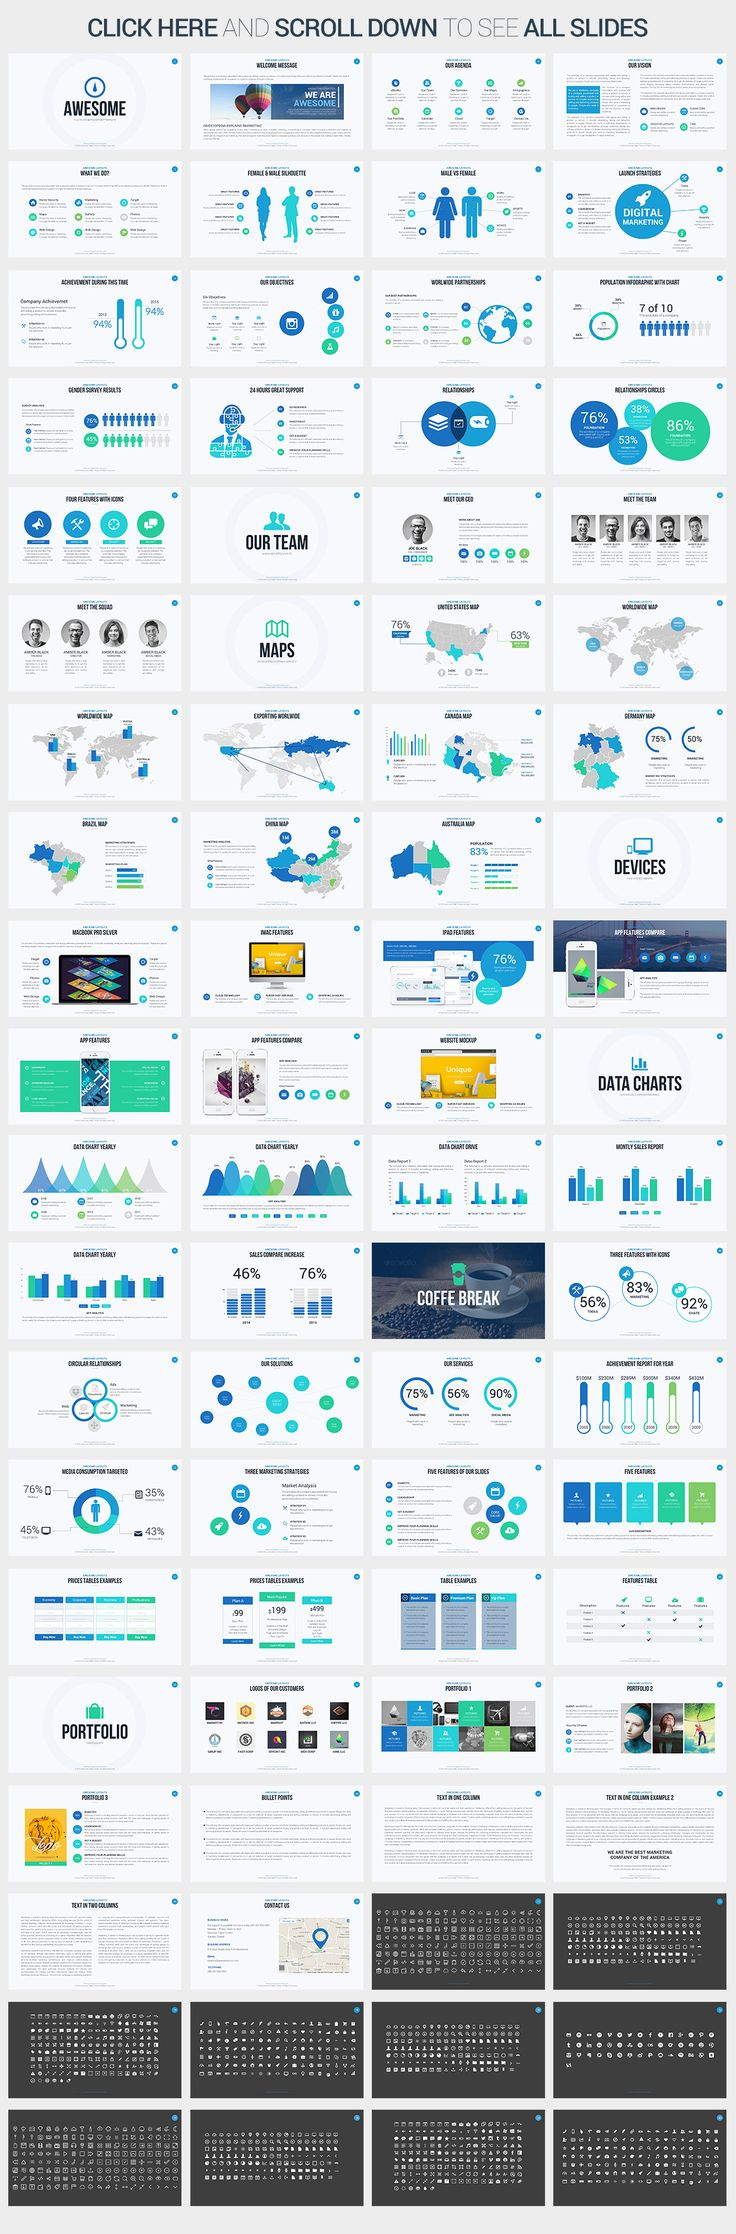 Awesome Powerpoint Template - Presentations - 3